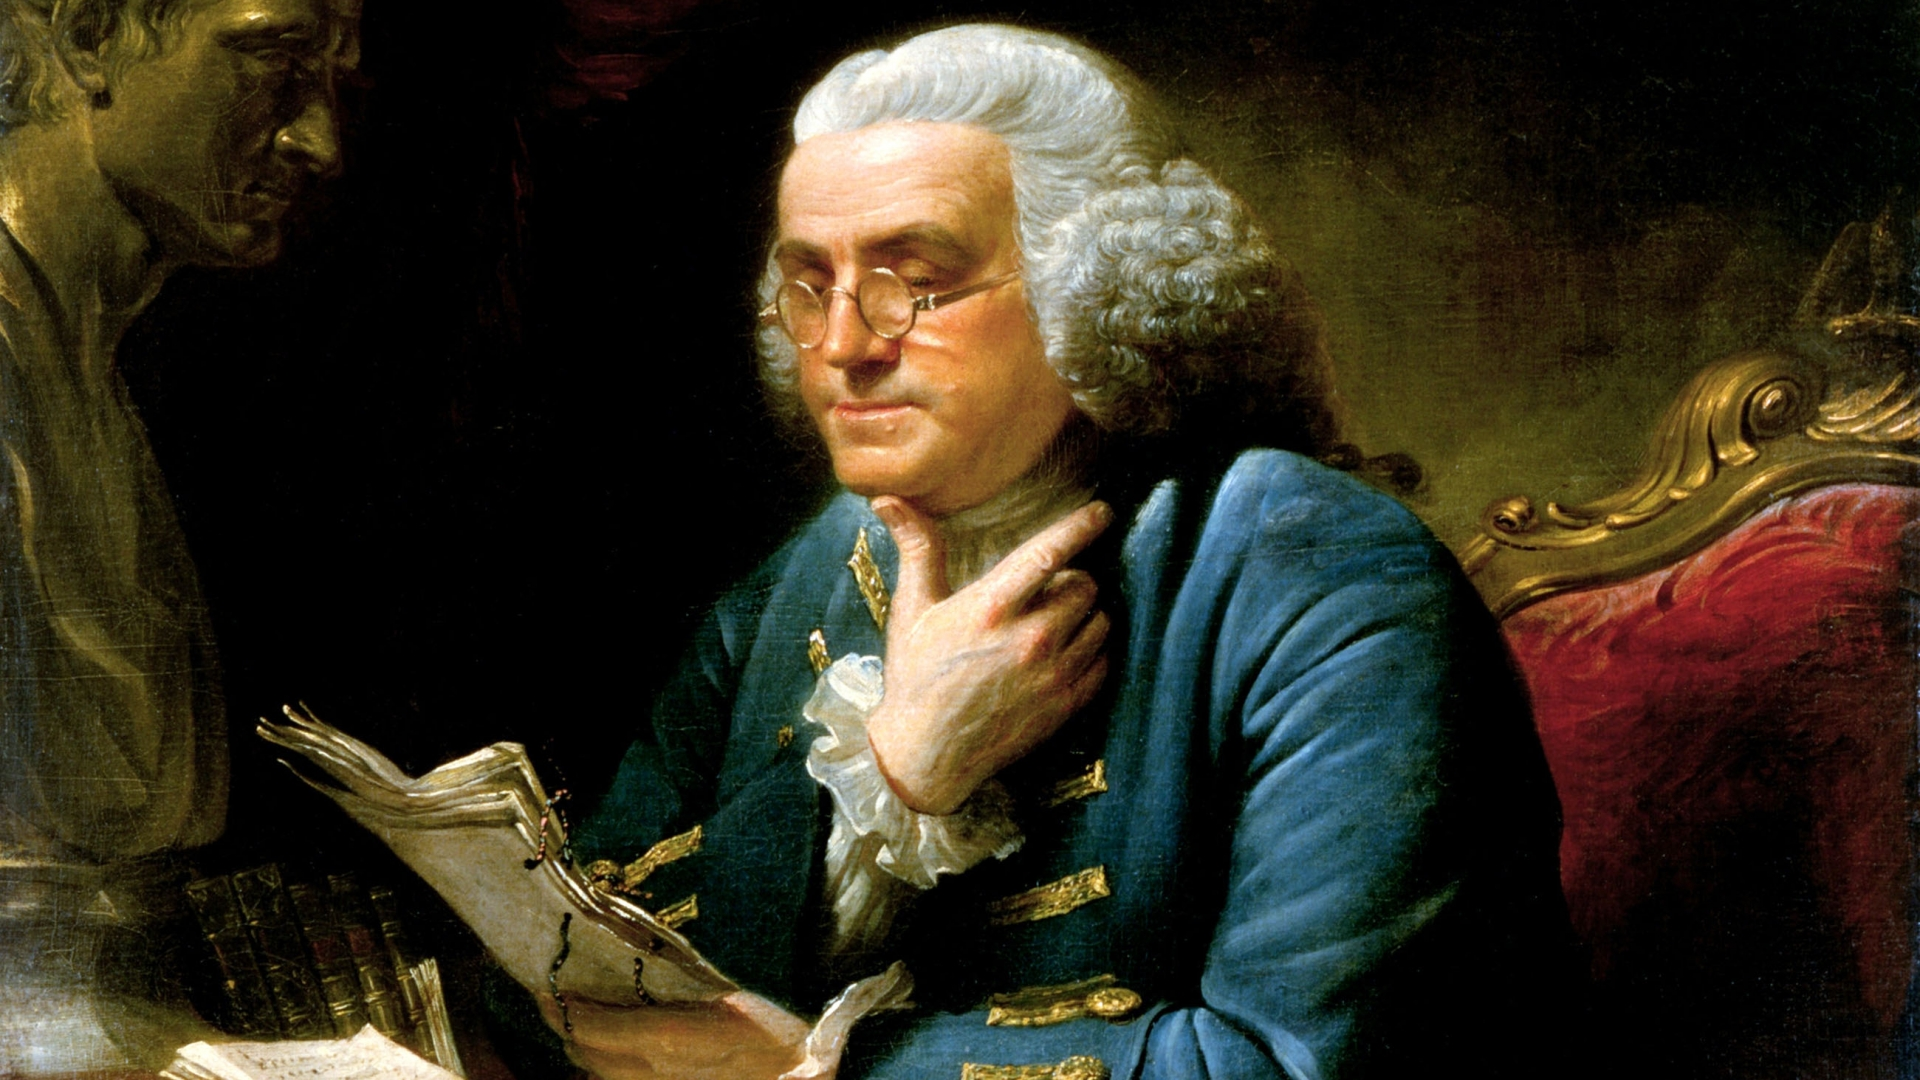 Benjamin Franklin. (Credit: FineArt/Alamy Stock Photo)